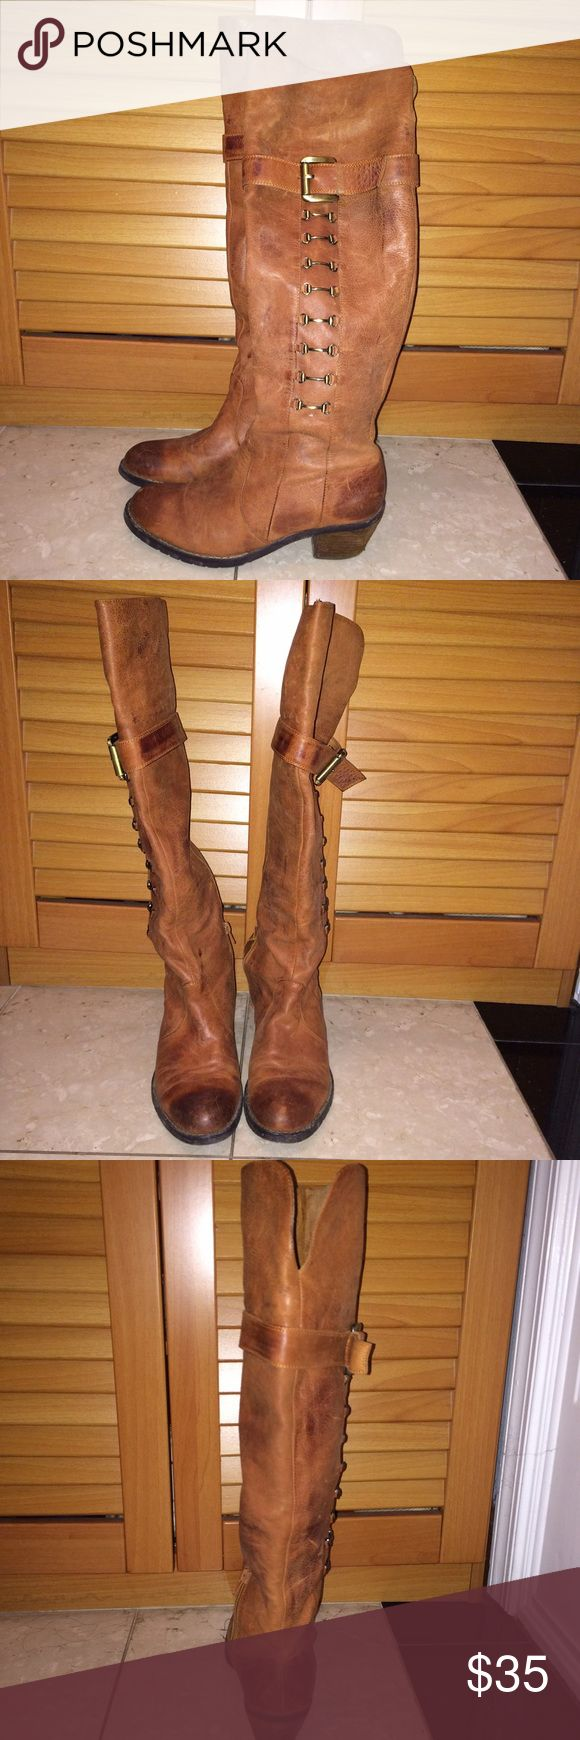 Tall tan leather boots Worn a few times Shoes Over the Knee Boots